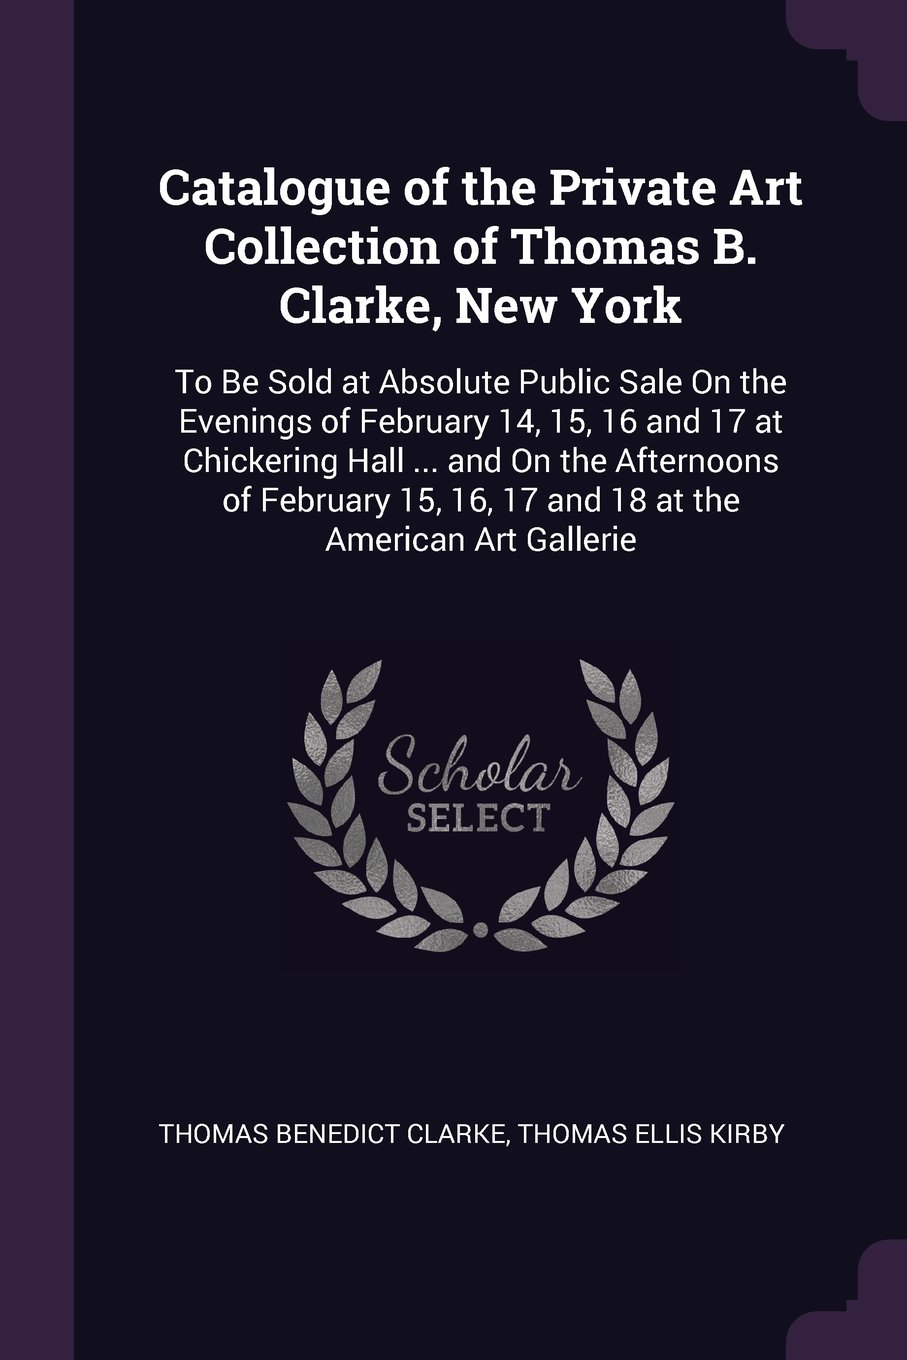 Download Catalogue of the Private Art Collection of Thomas B. Clarke, New York: To Be Sold at Absolute Public Sale On the Evenings of February 14, 15, 16 and ... 16, 17 and 18 at the American Art Gallerie pdf